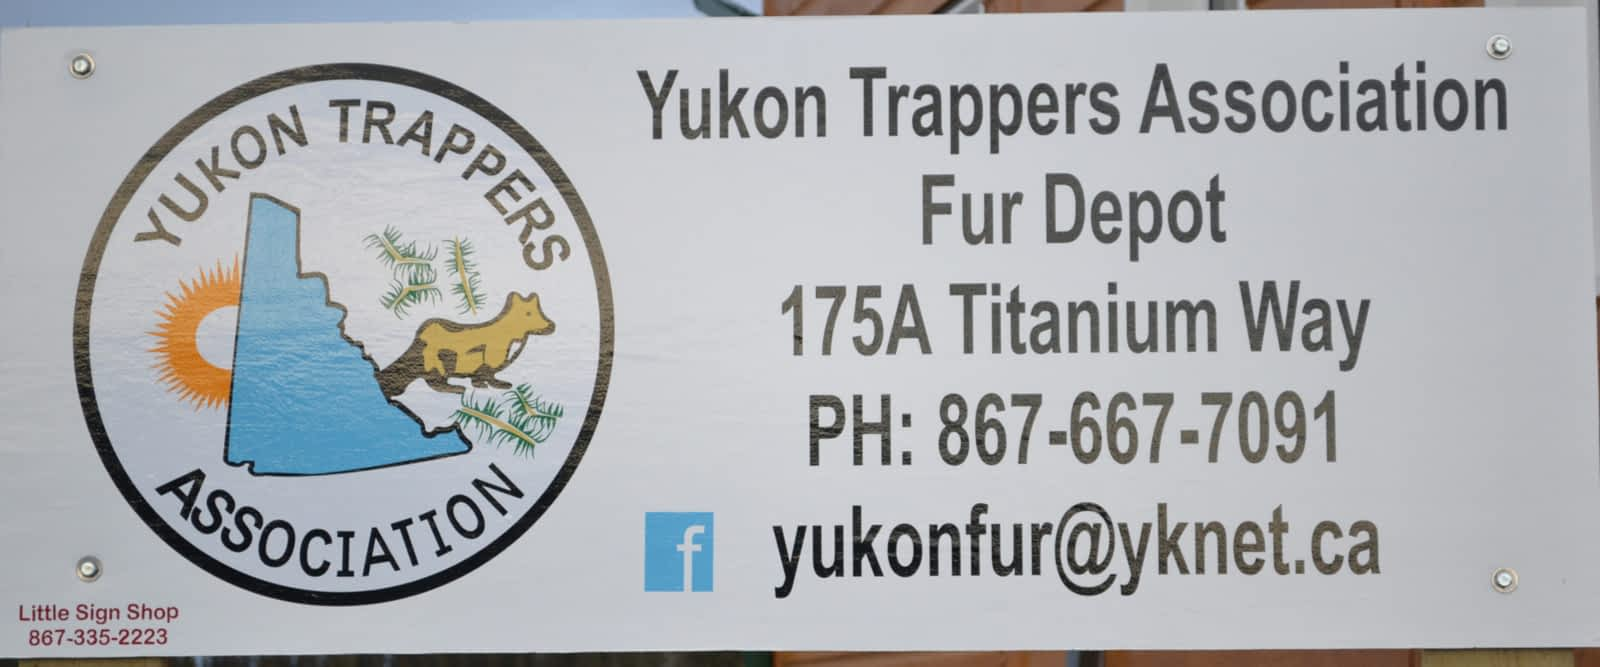 Yukon Trappers Association